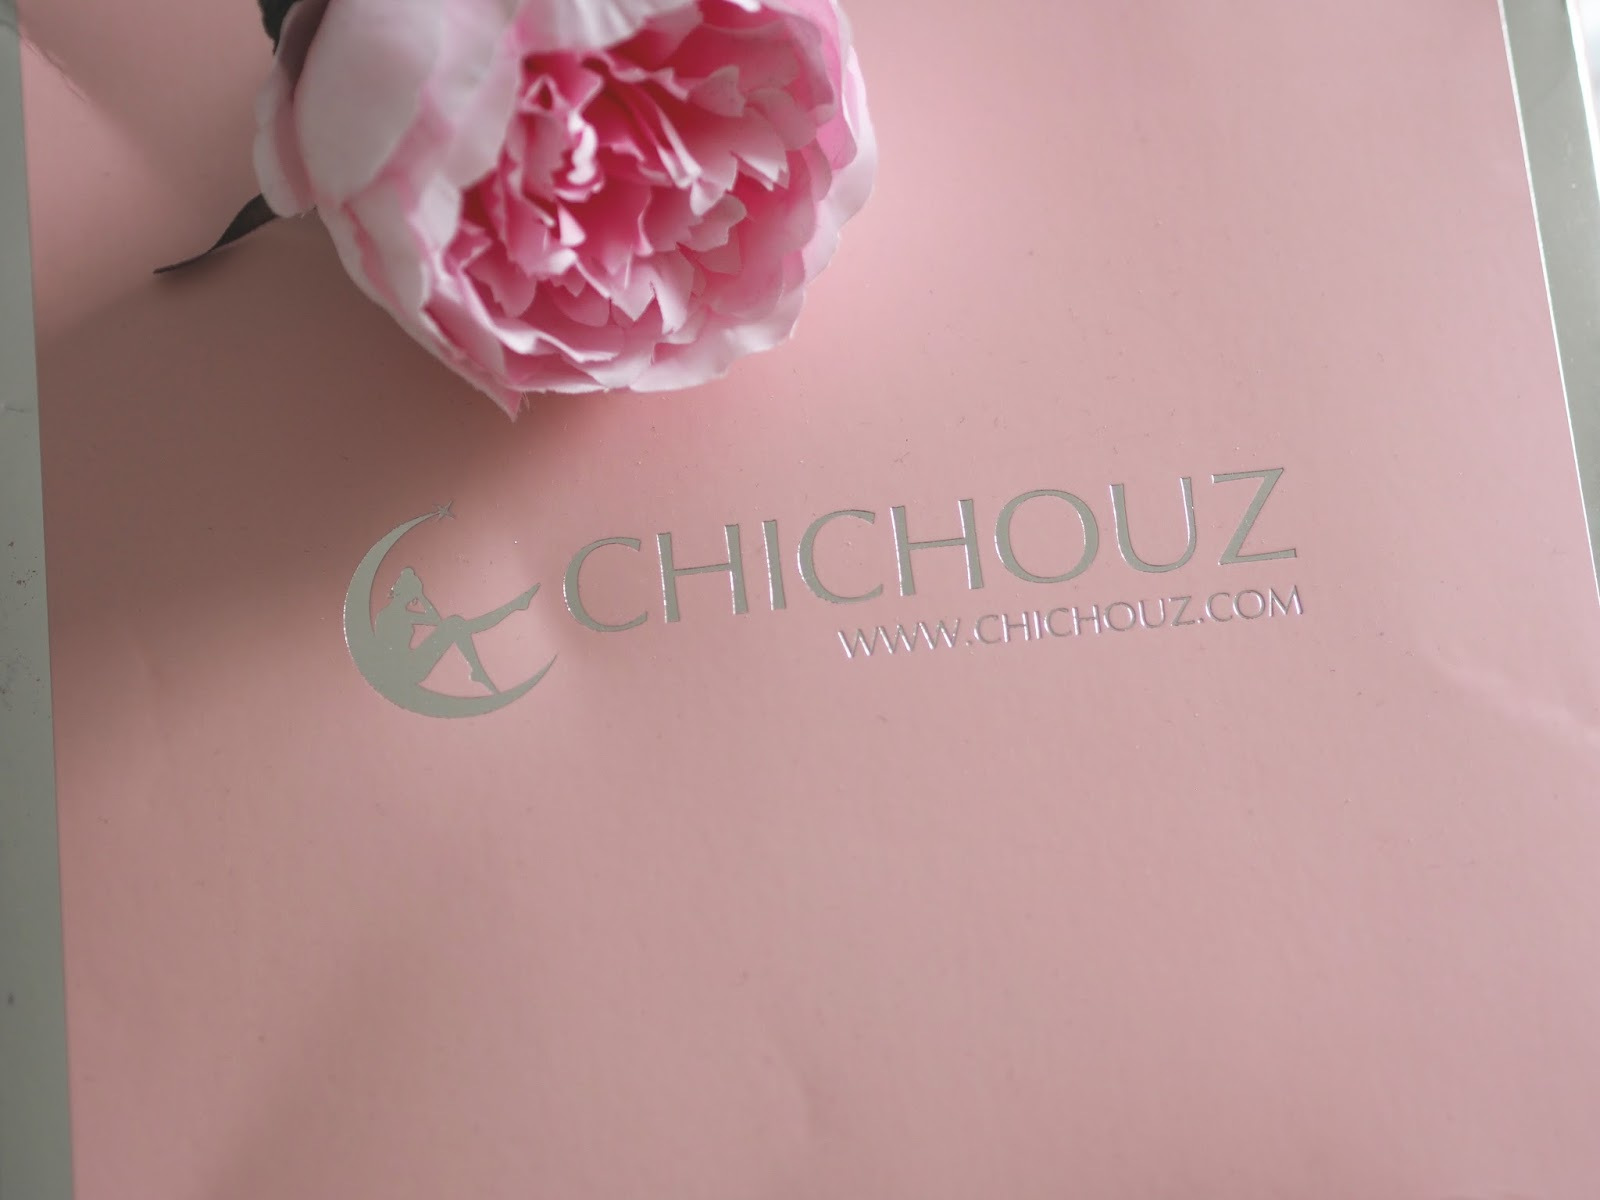 Silk pillowcase from Chichouz for better skin and hair \ beauty \ skincare \ Priceless Life of Mine \ 40 plus lifestyle blog